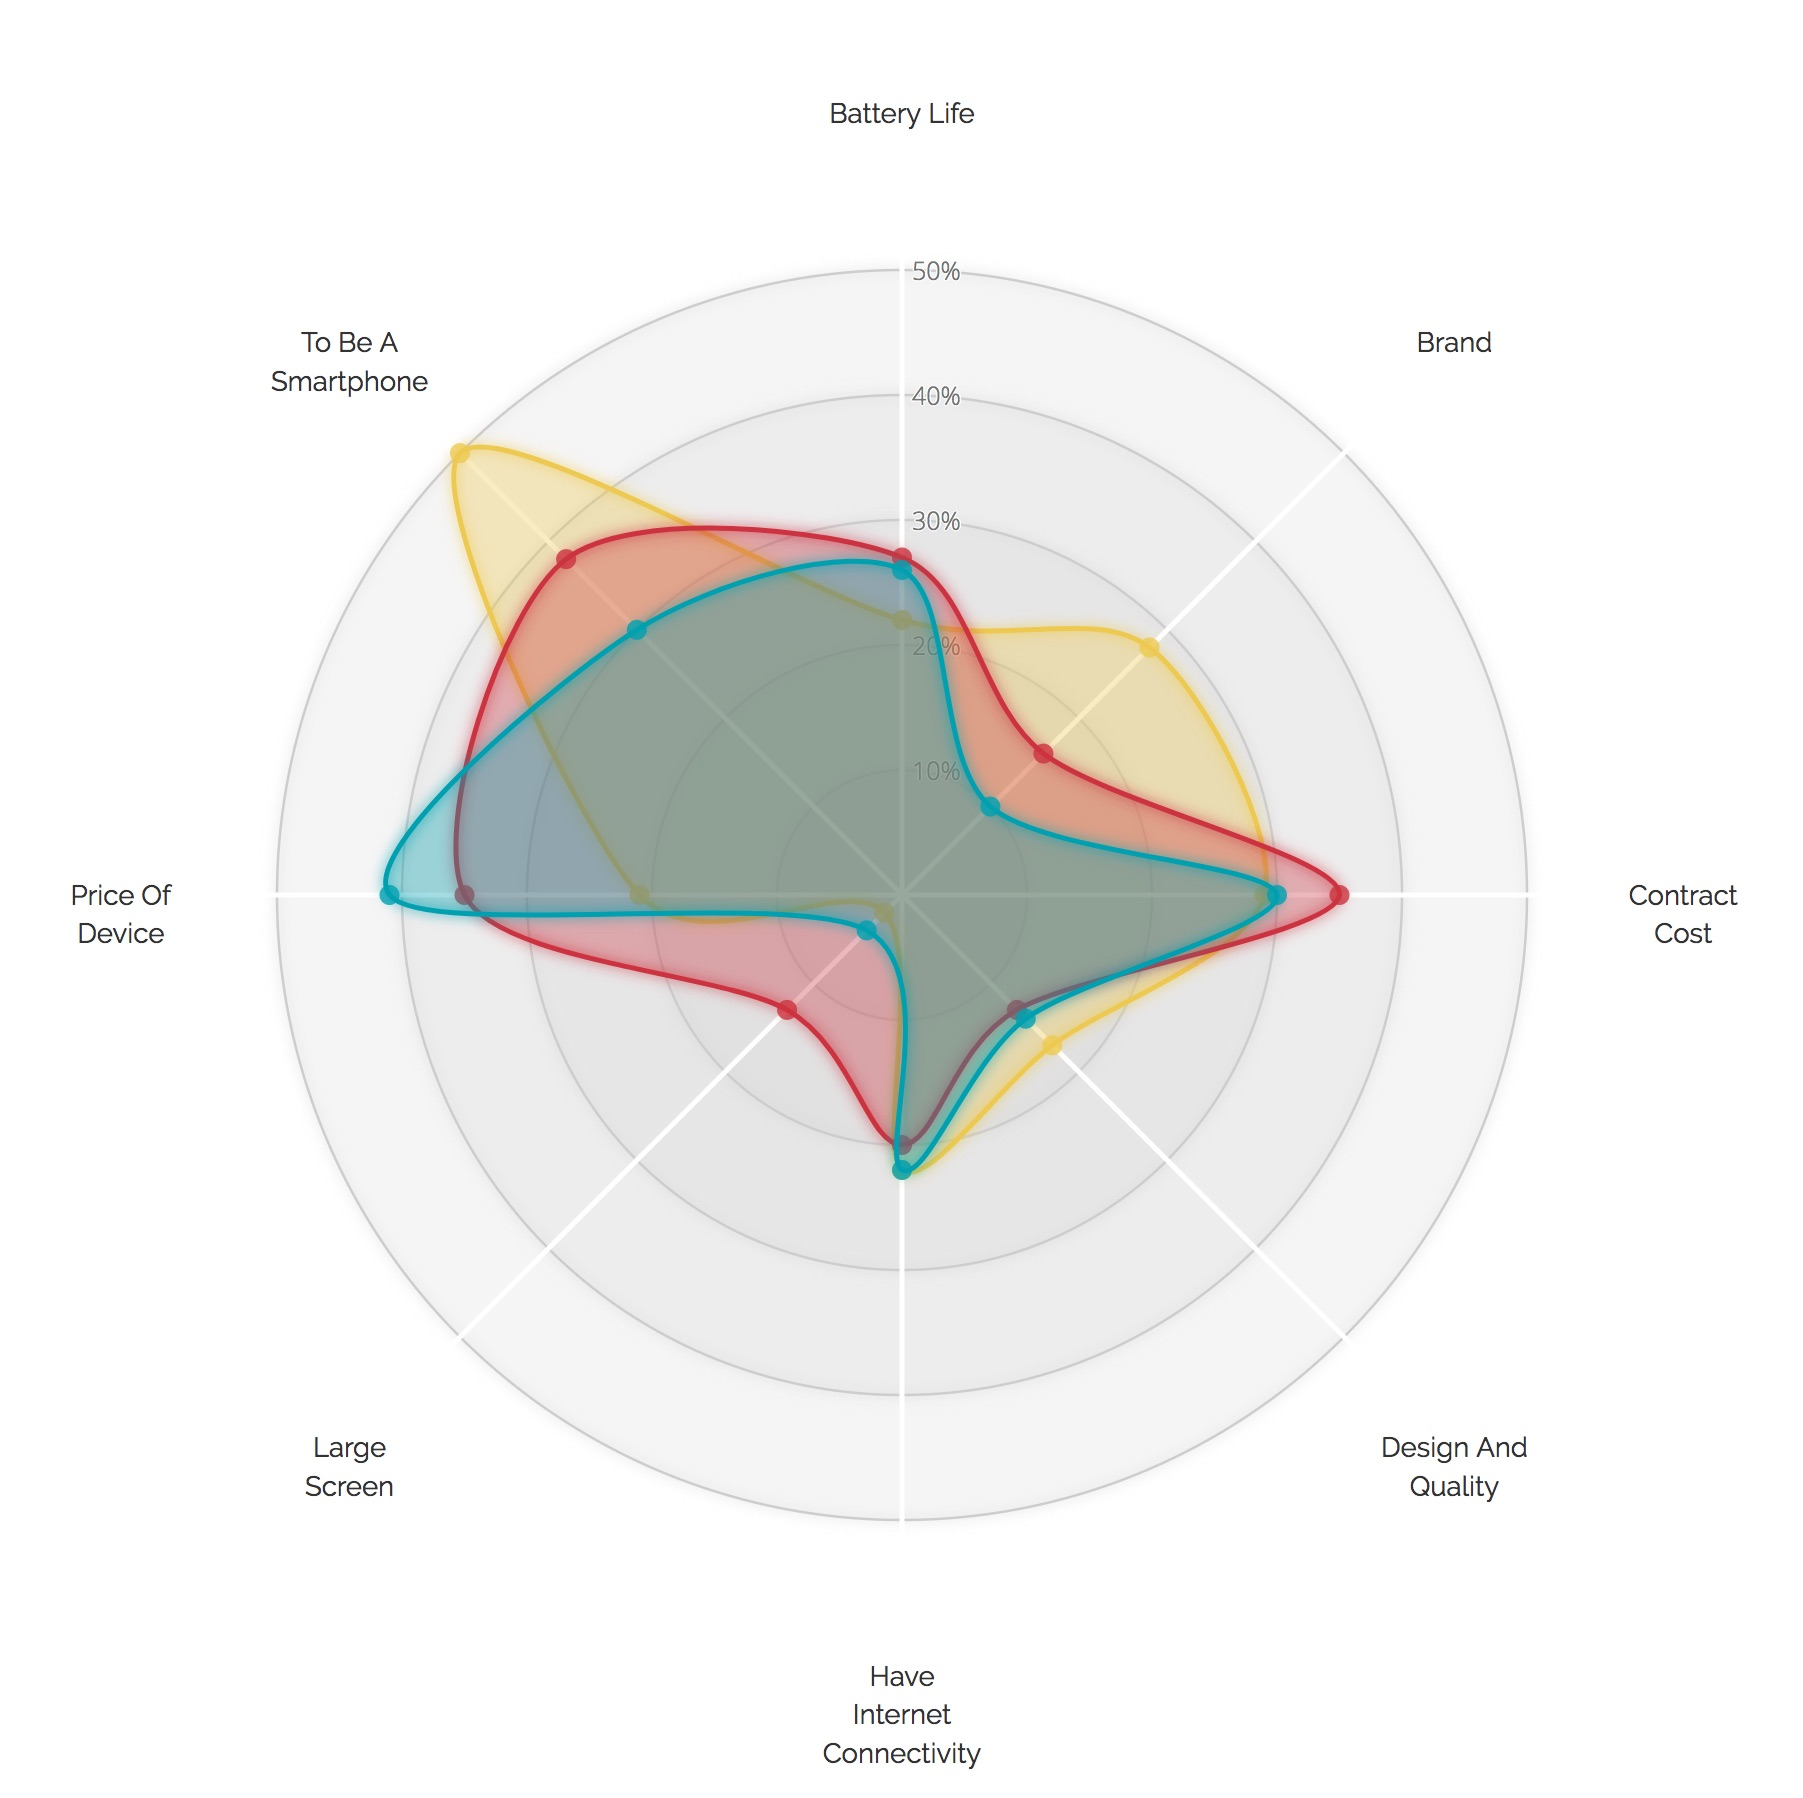 A Different Look For The D3js Radar Chart Visual Cinnamon